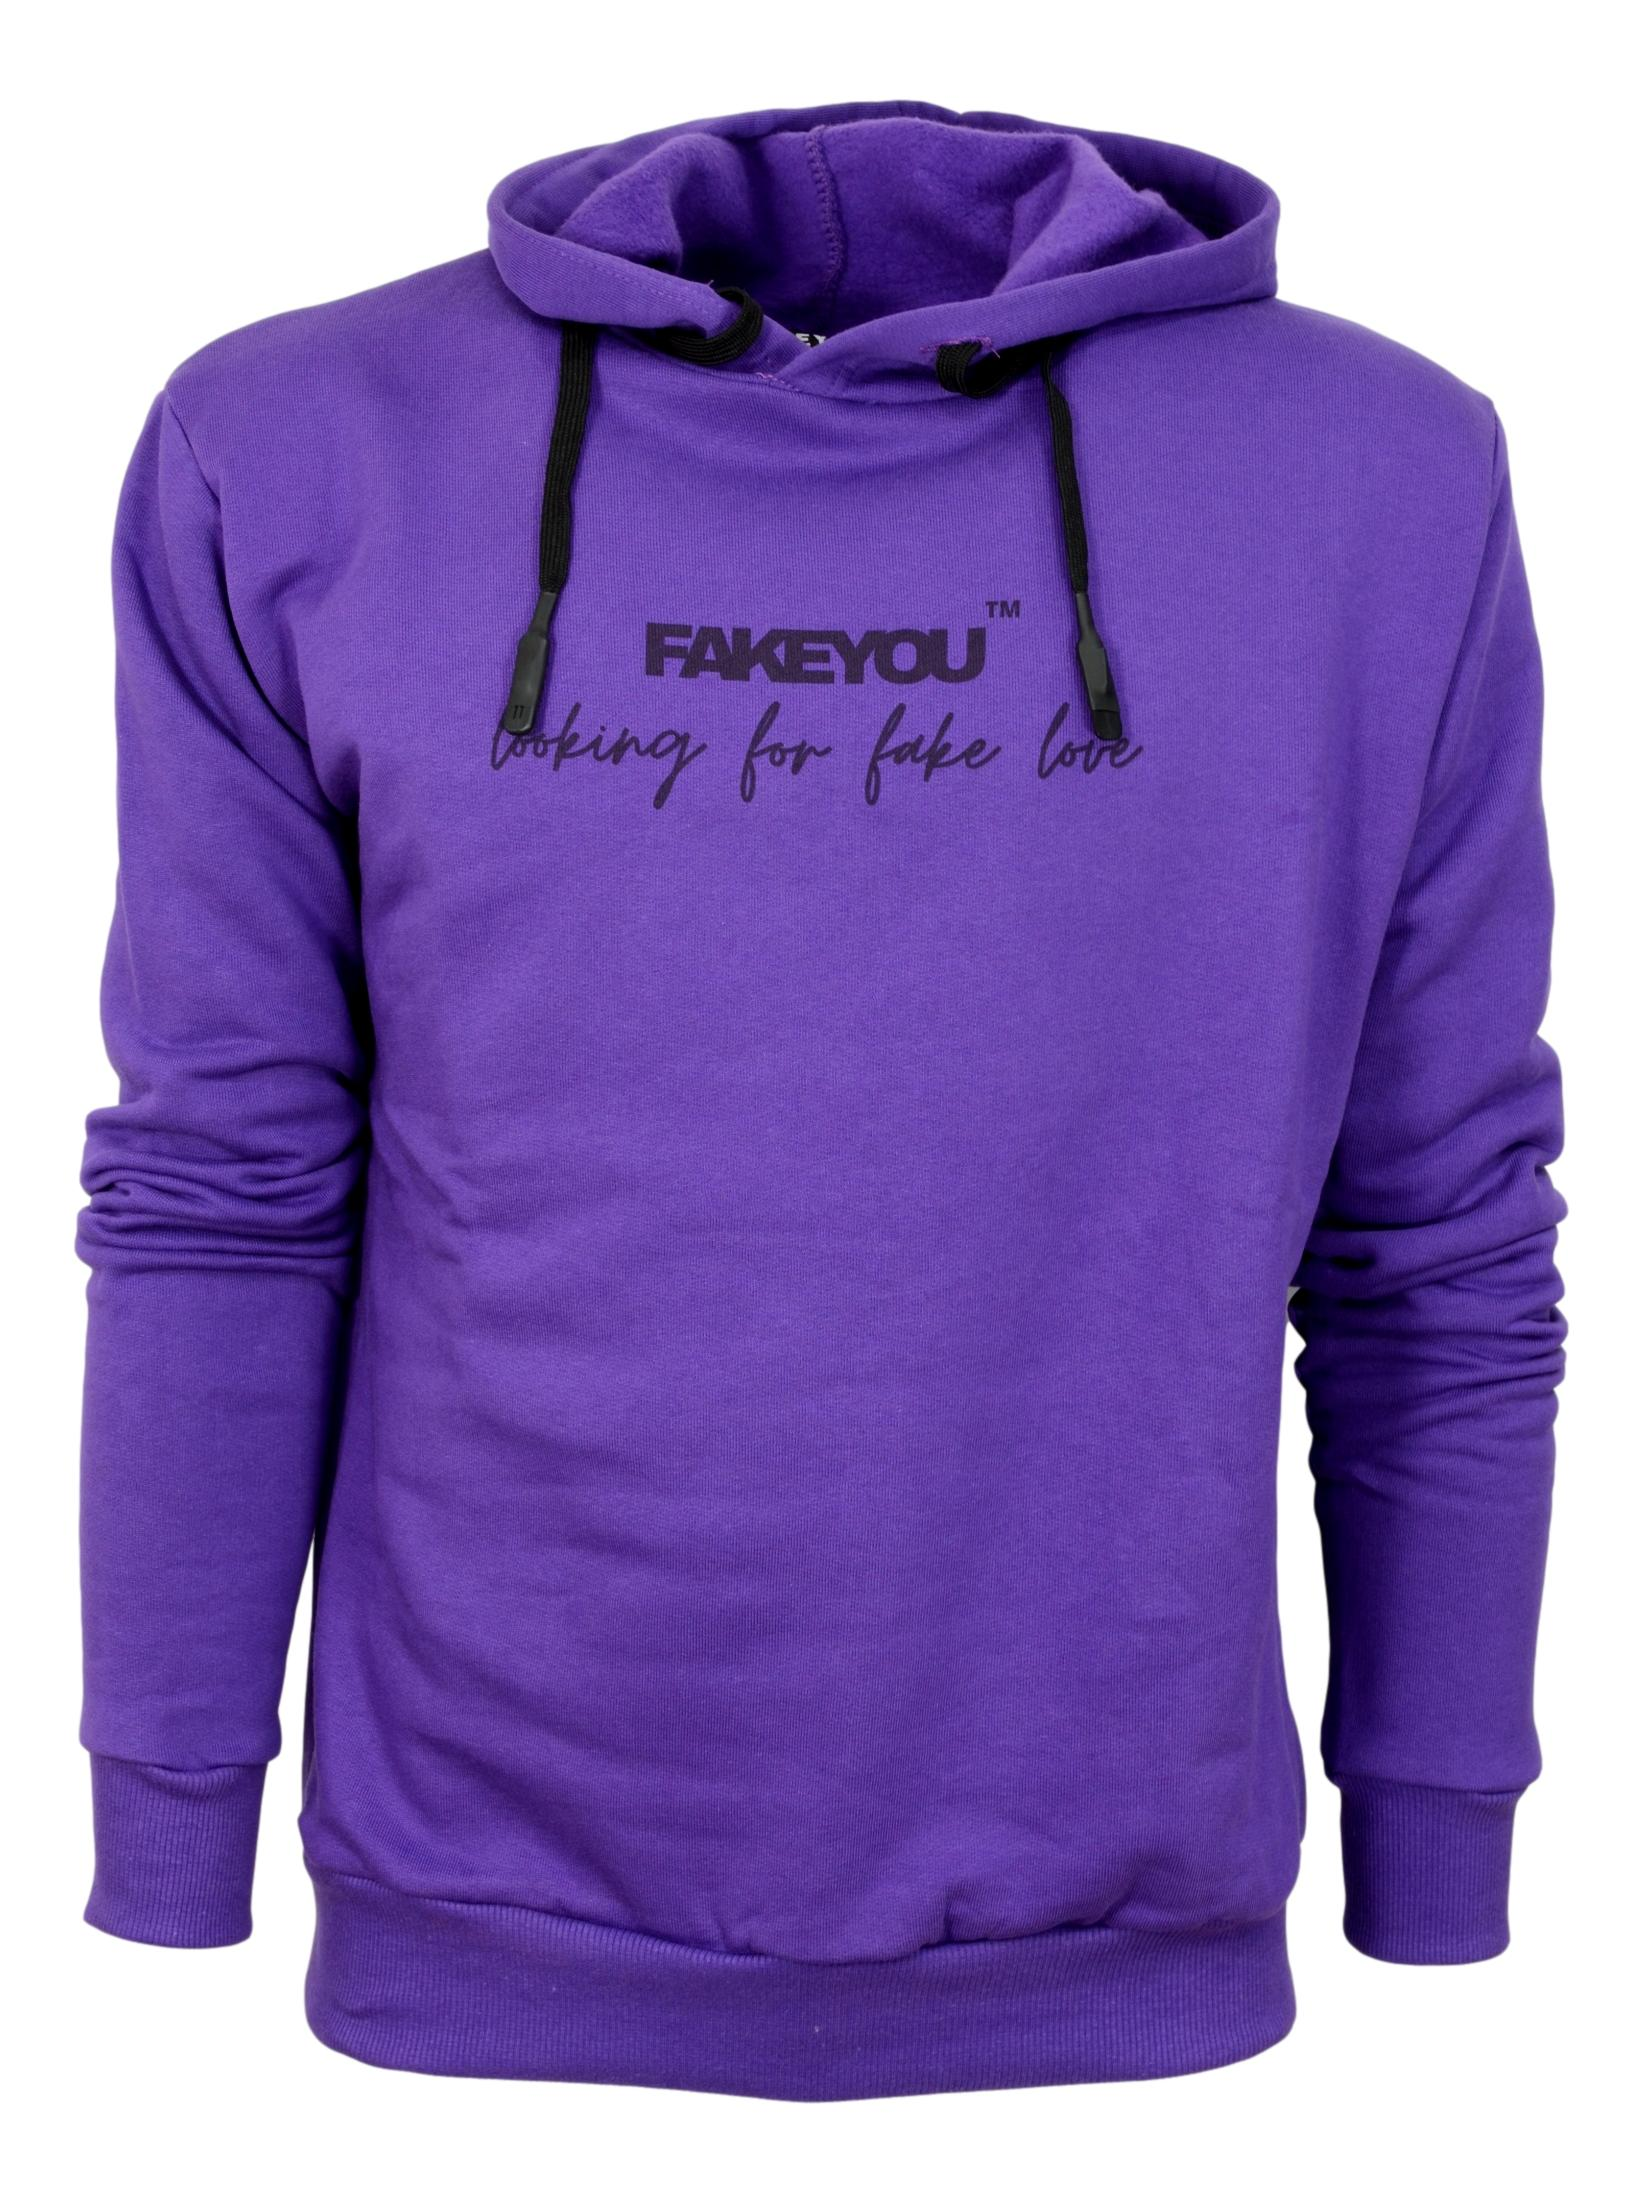 FAKEYOU FELPA CON CAPPUCCIO UNISEX PURPLE1 LOOKING FOR FAKE LOVE MADE IN ITALY